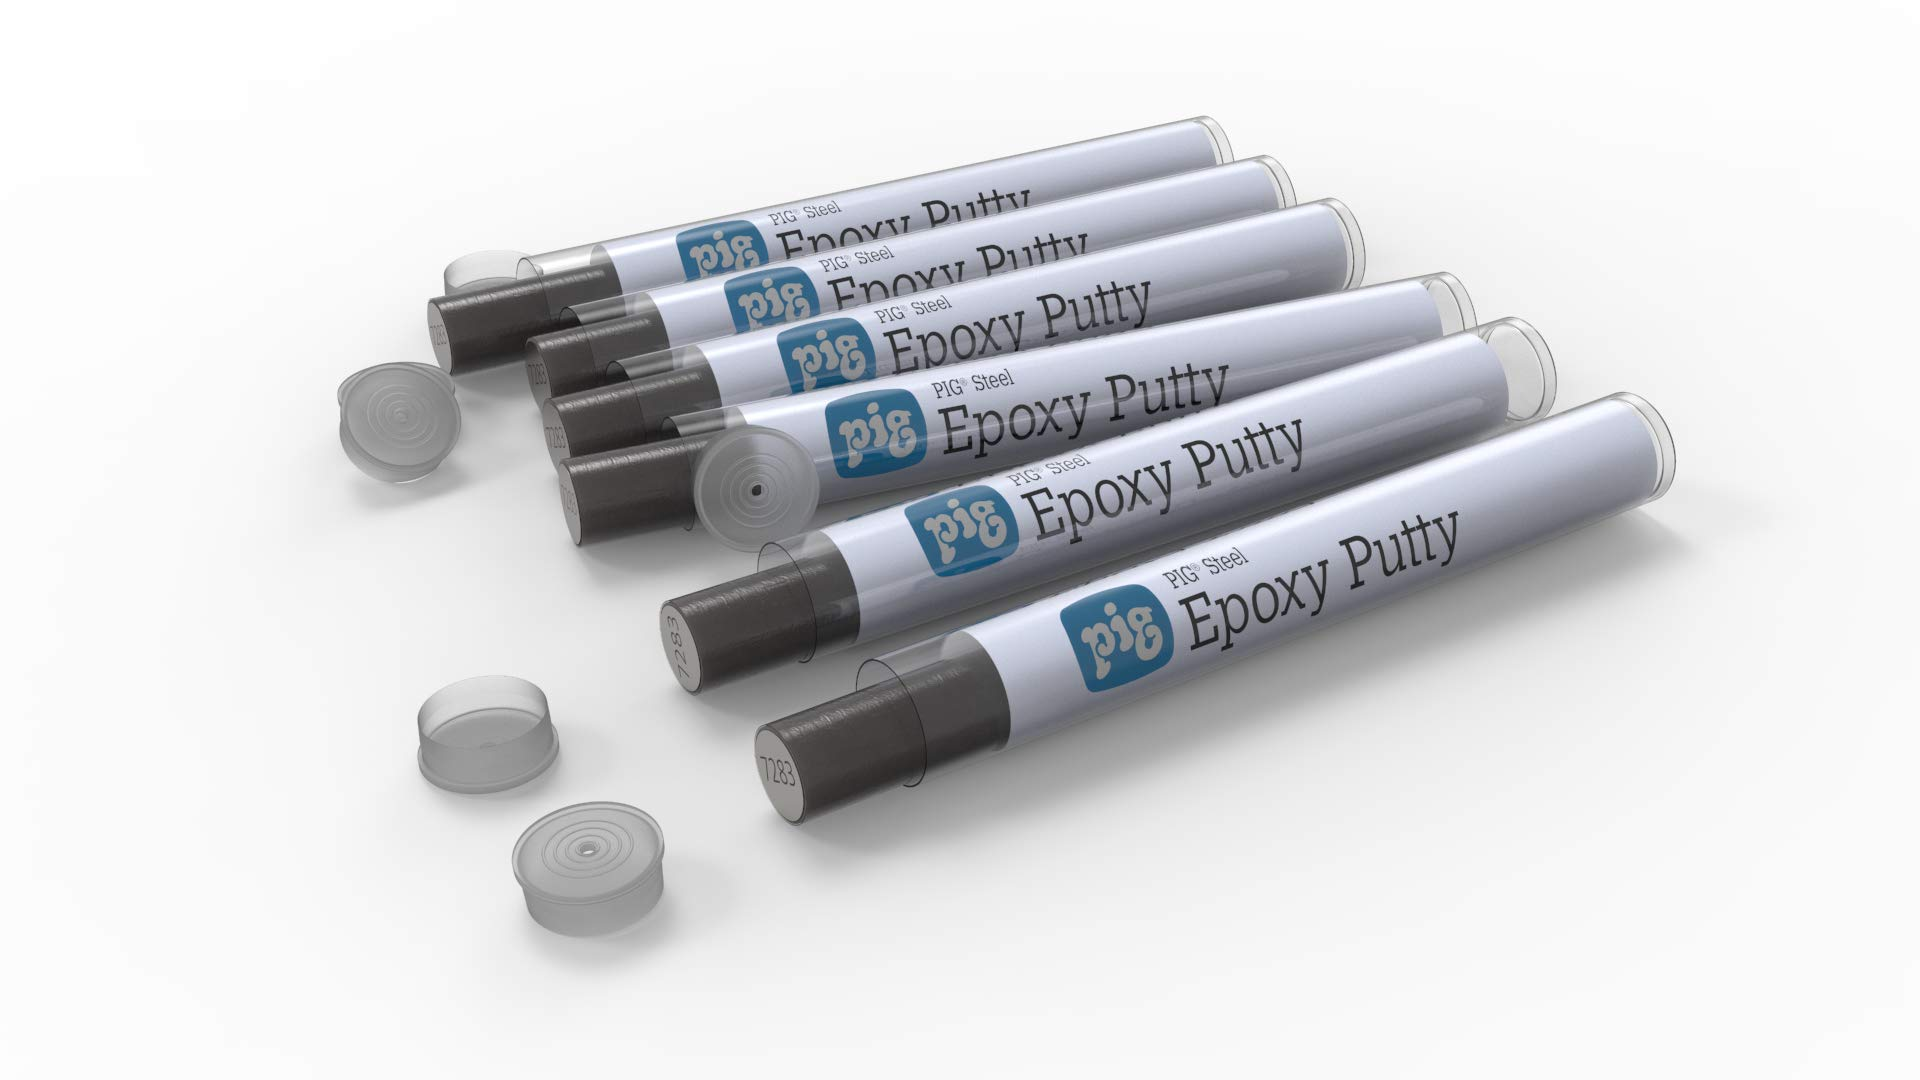 New Pig Steel Epoxy Putty for The Garage - Great for DIY Projects in The Garage and Workshop - Gray - Pack of 6 - PM50172